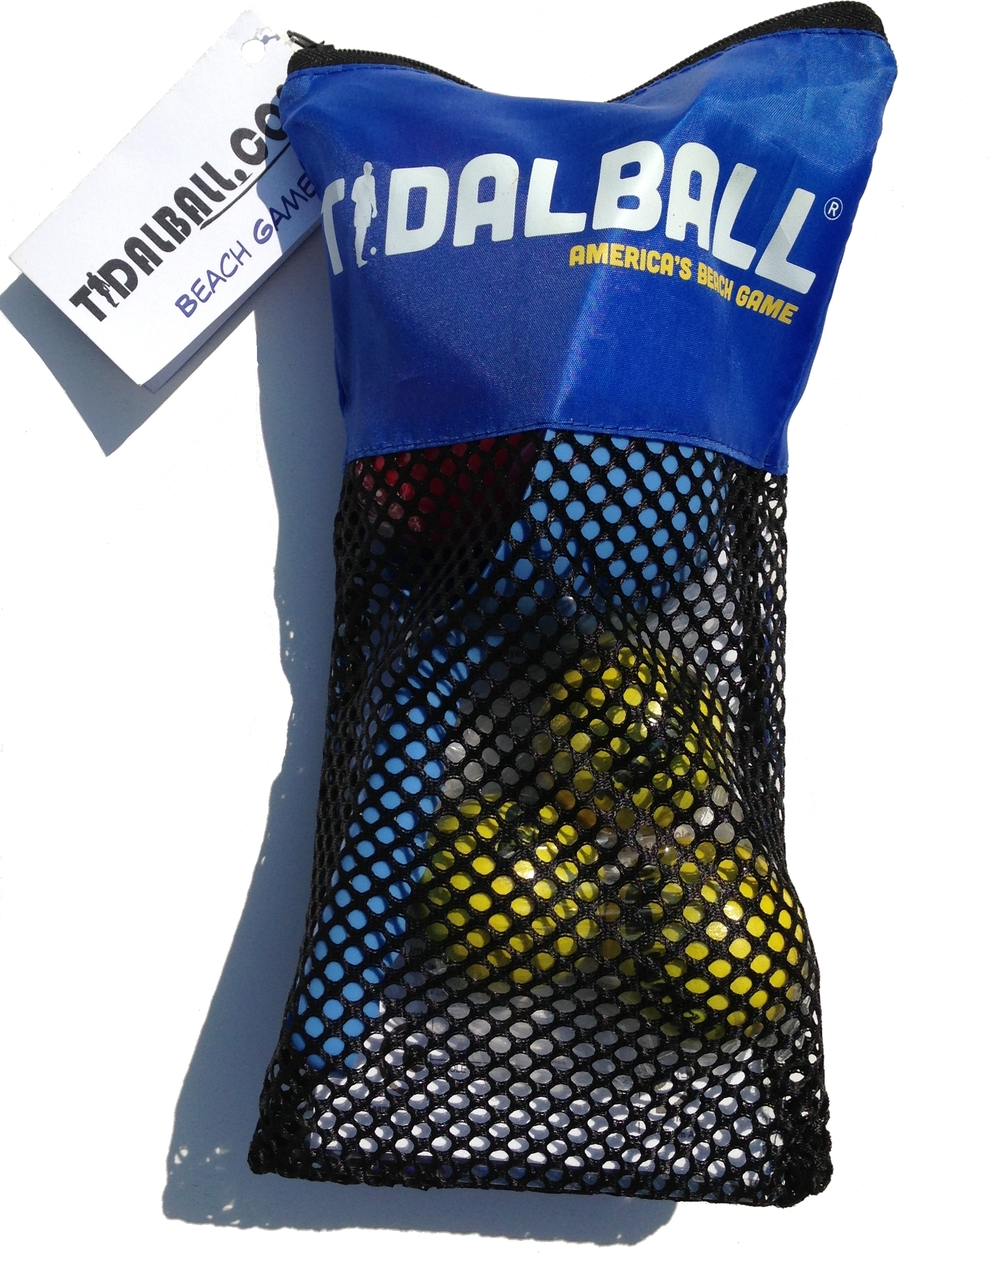 TIDALBALL NEW BAG.jpg